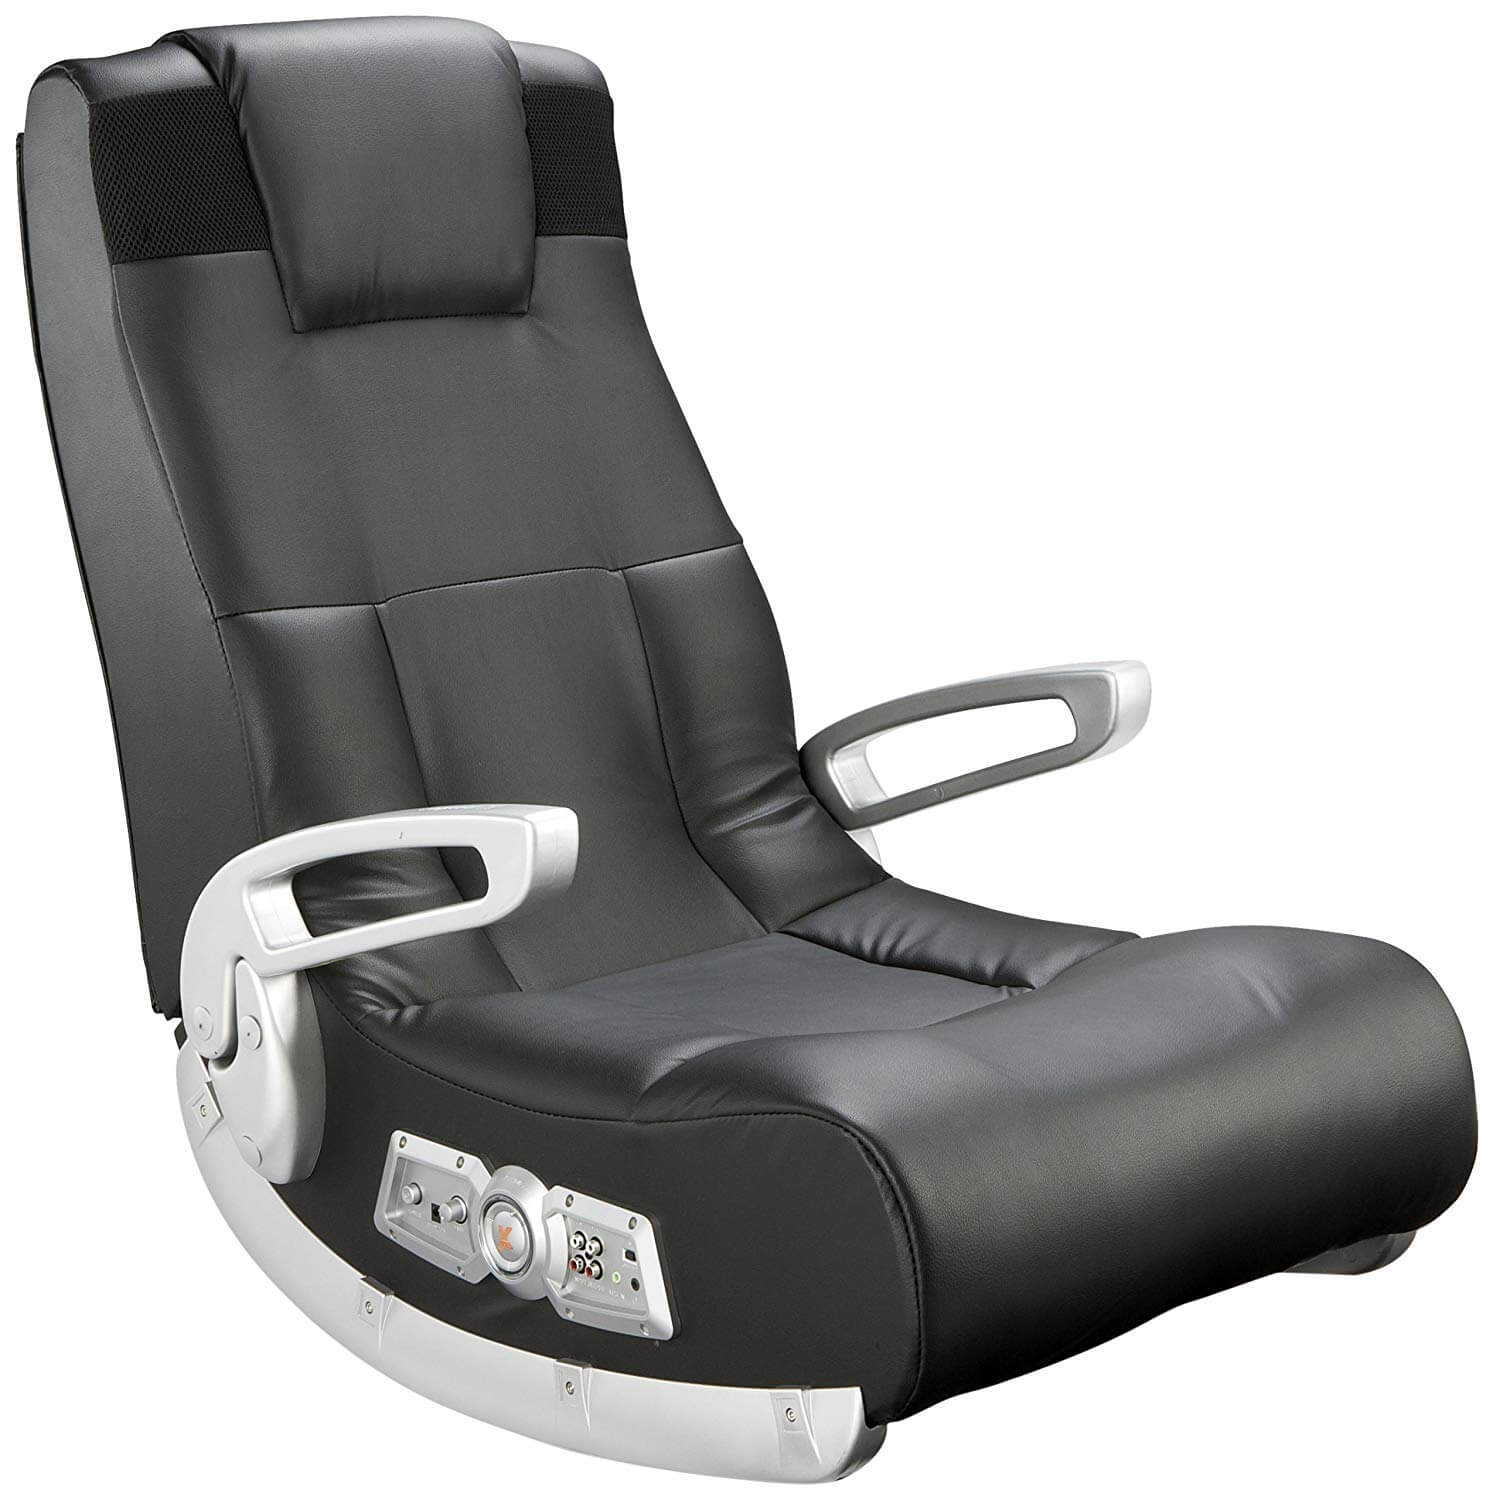 Terrific The Top 10 Gaming Chair With Speakers On Amazon Ibusinesslaw Wood Chair Design Ideas Ibusinesslaworg